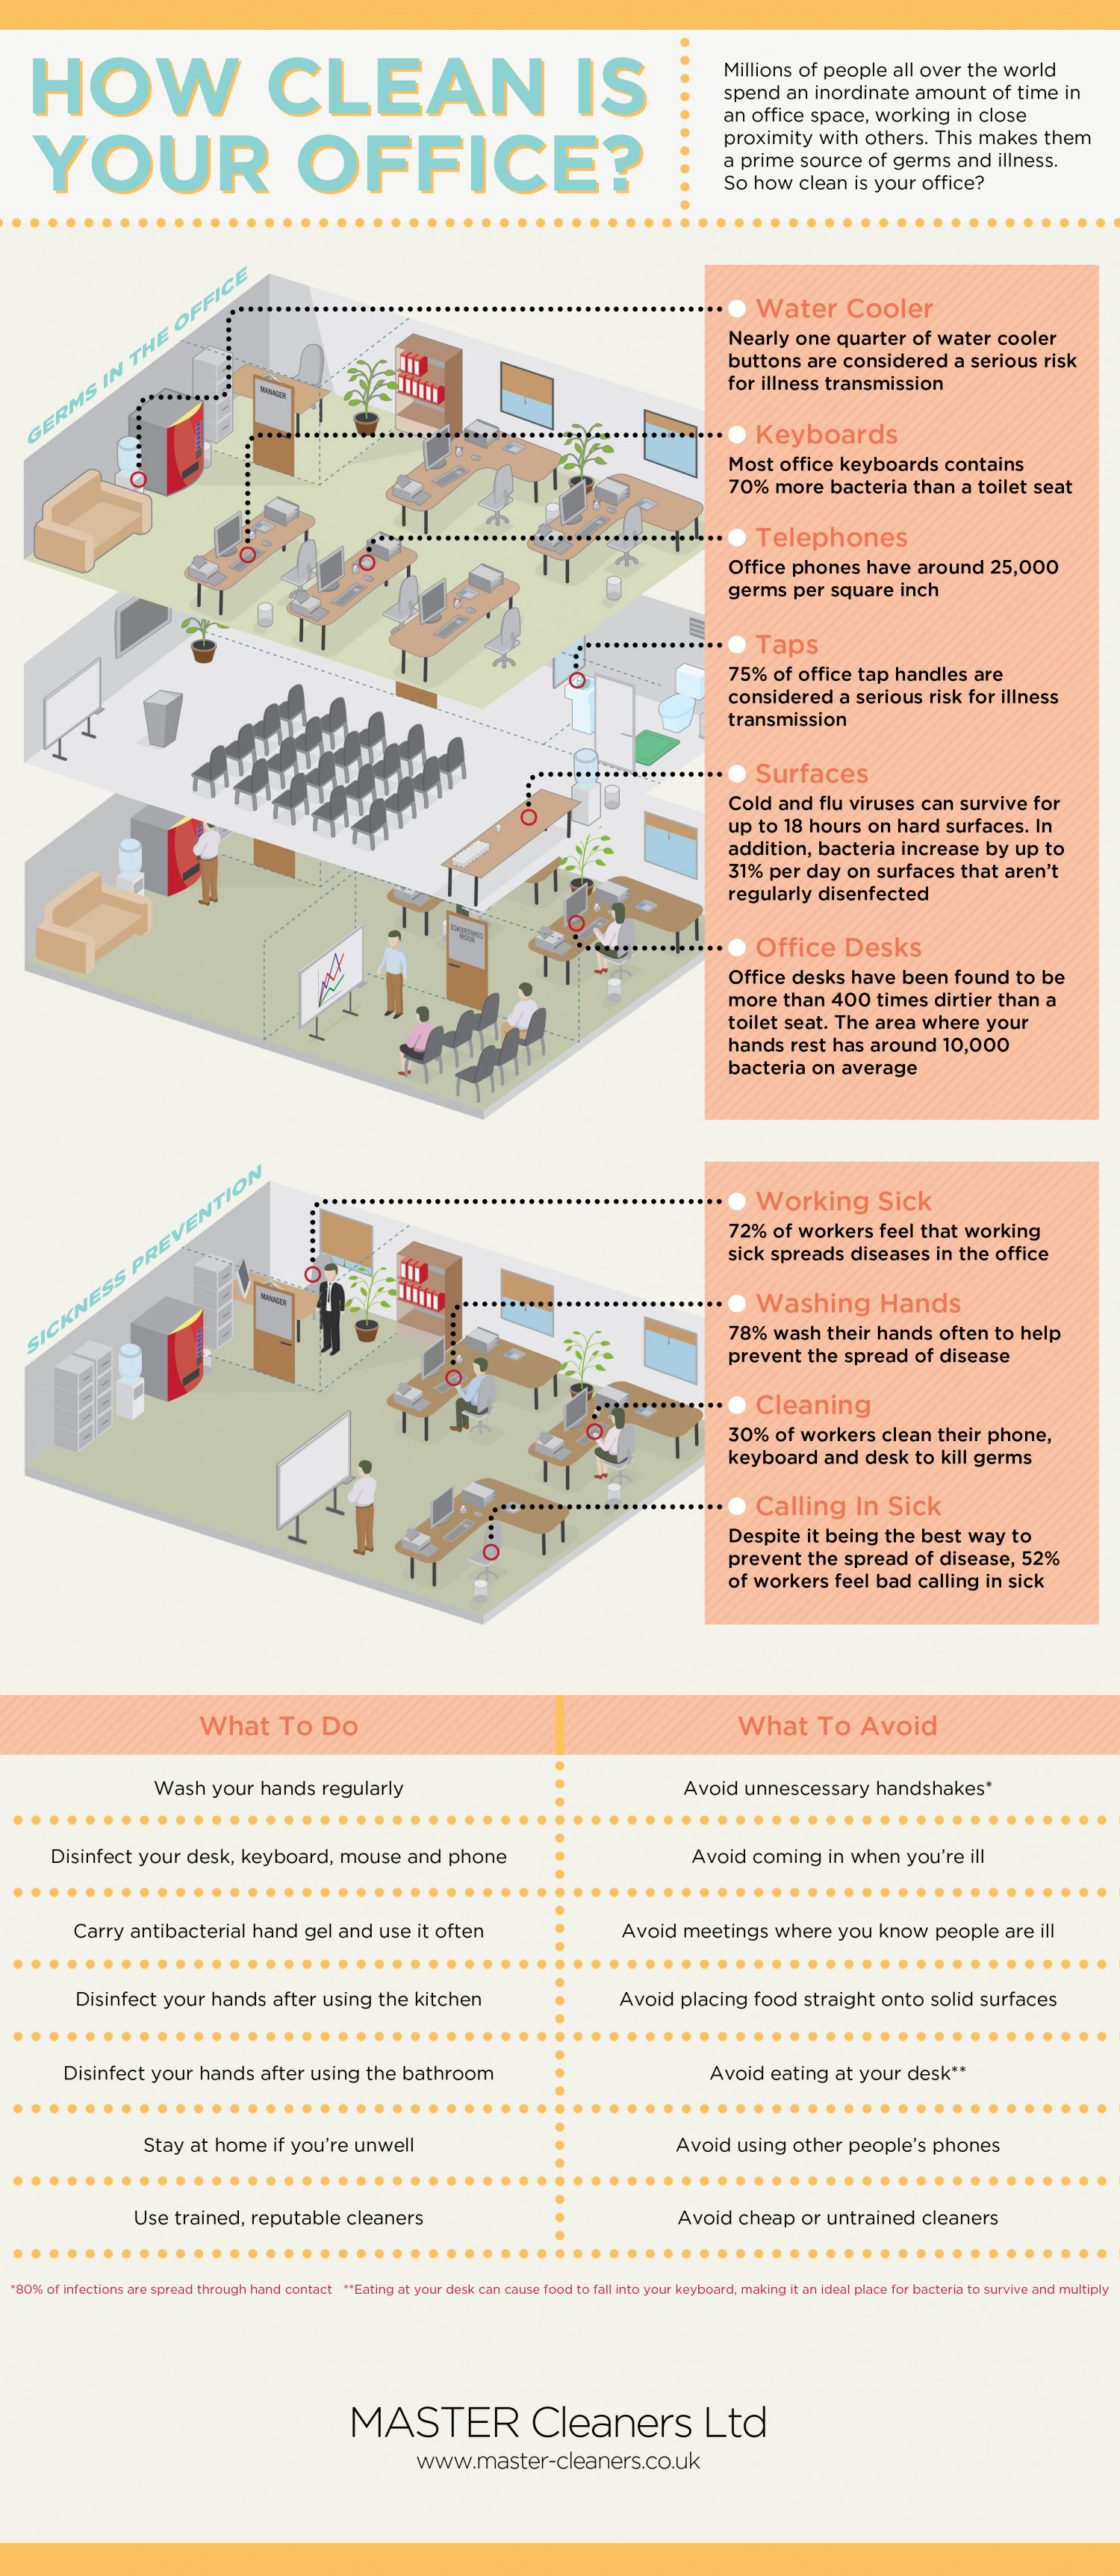 How Clean is Your Office? Infographic